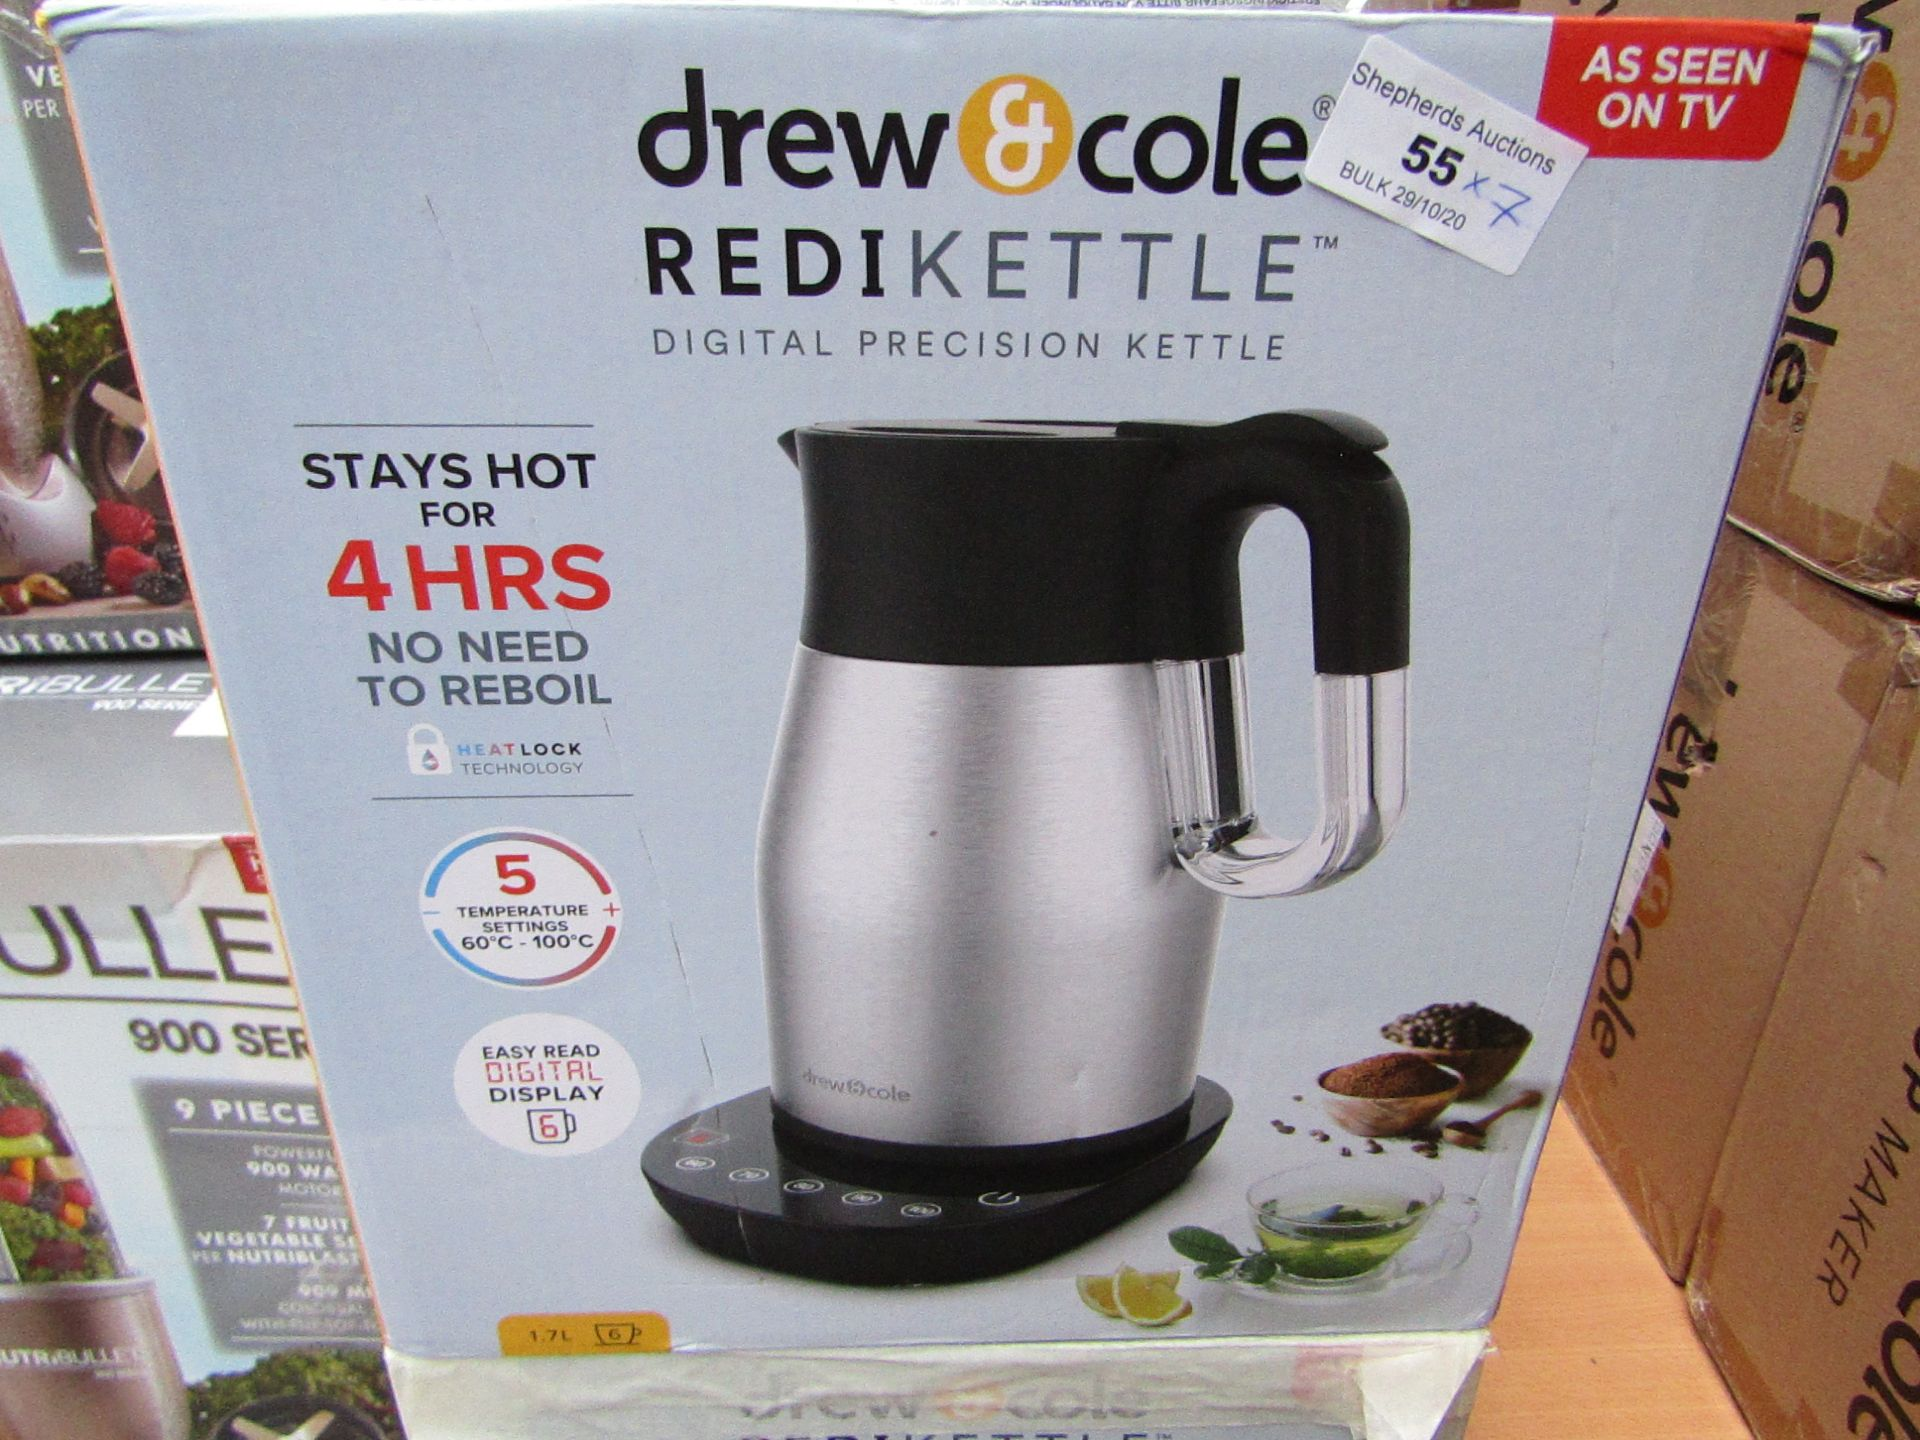   7X   DREW AND COLE REDI KETTLE   UNCHECKED AND BOXED   NO ONLINE RESALE   SKU C5060541513587   RRP